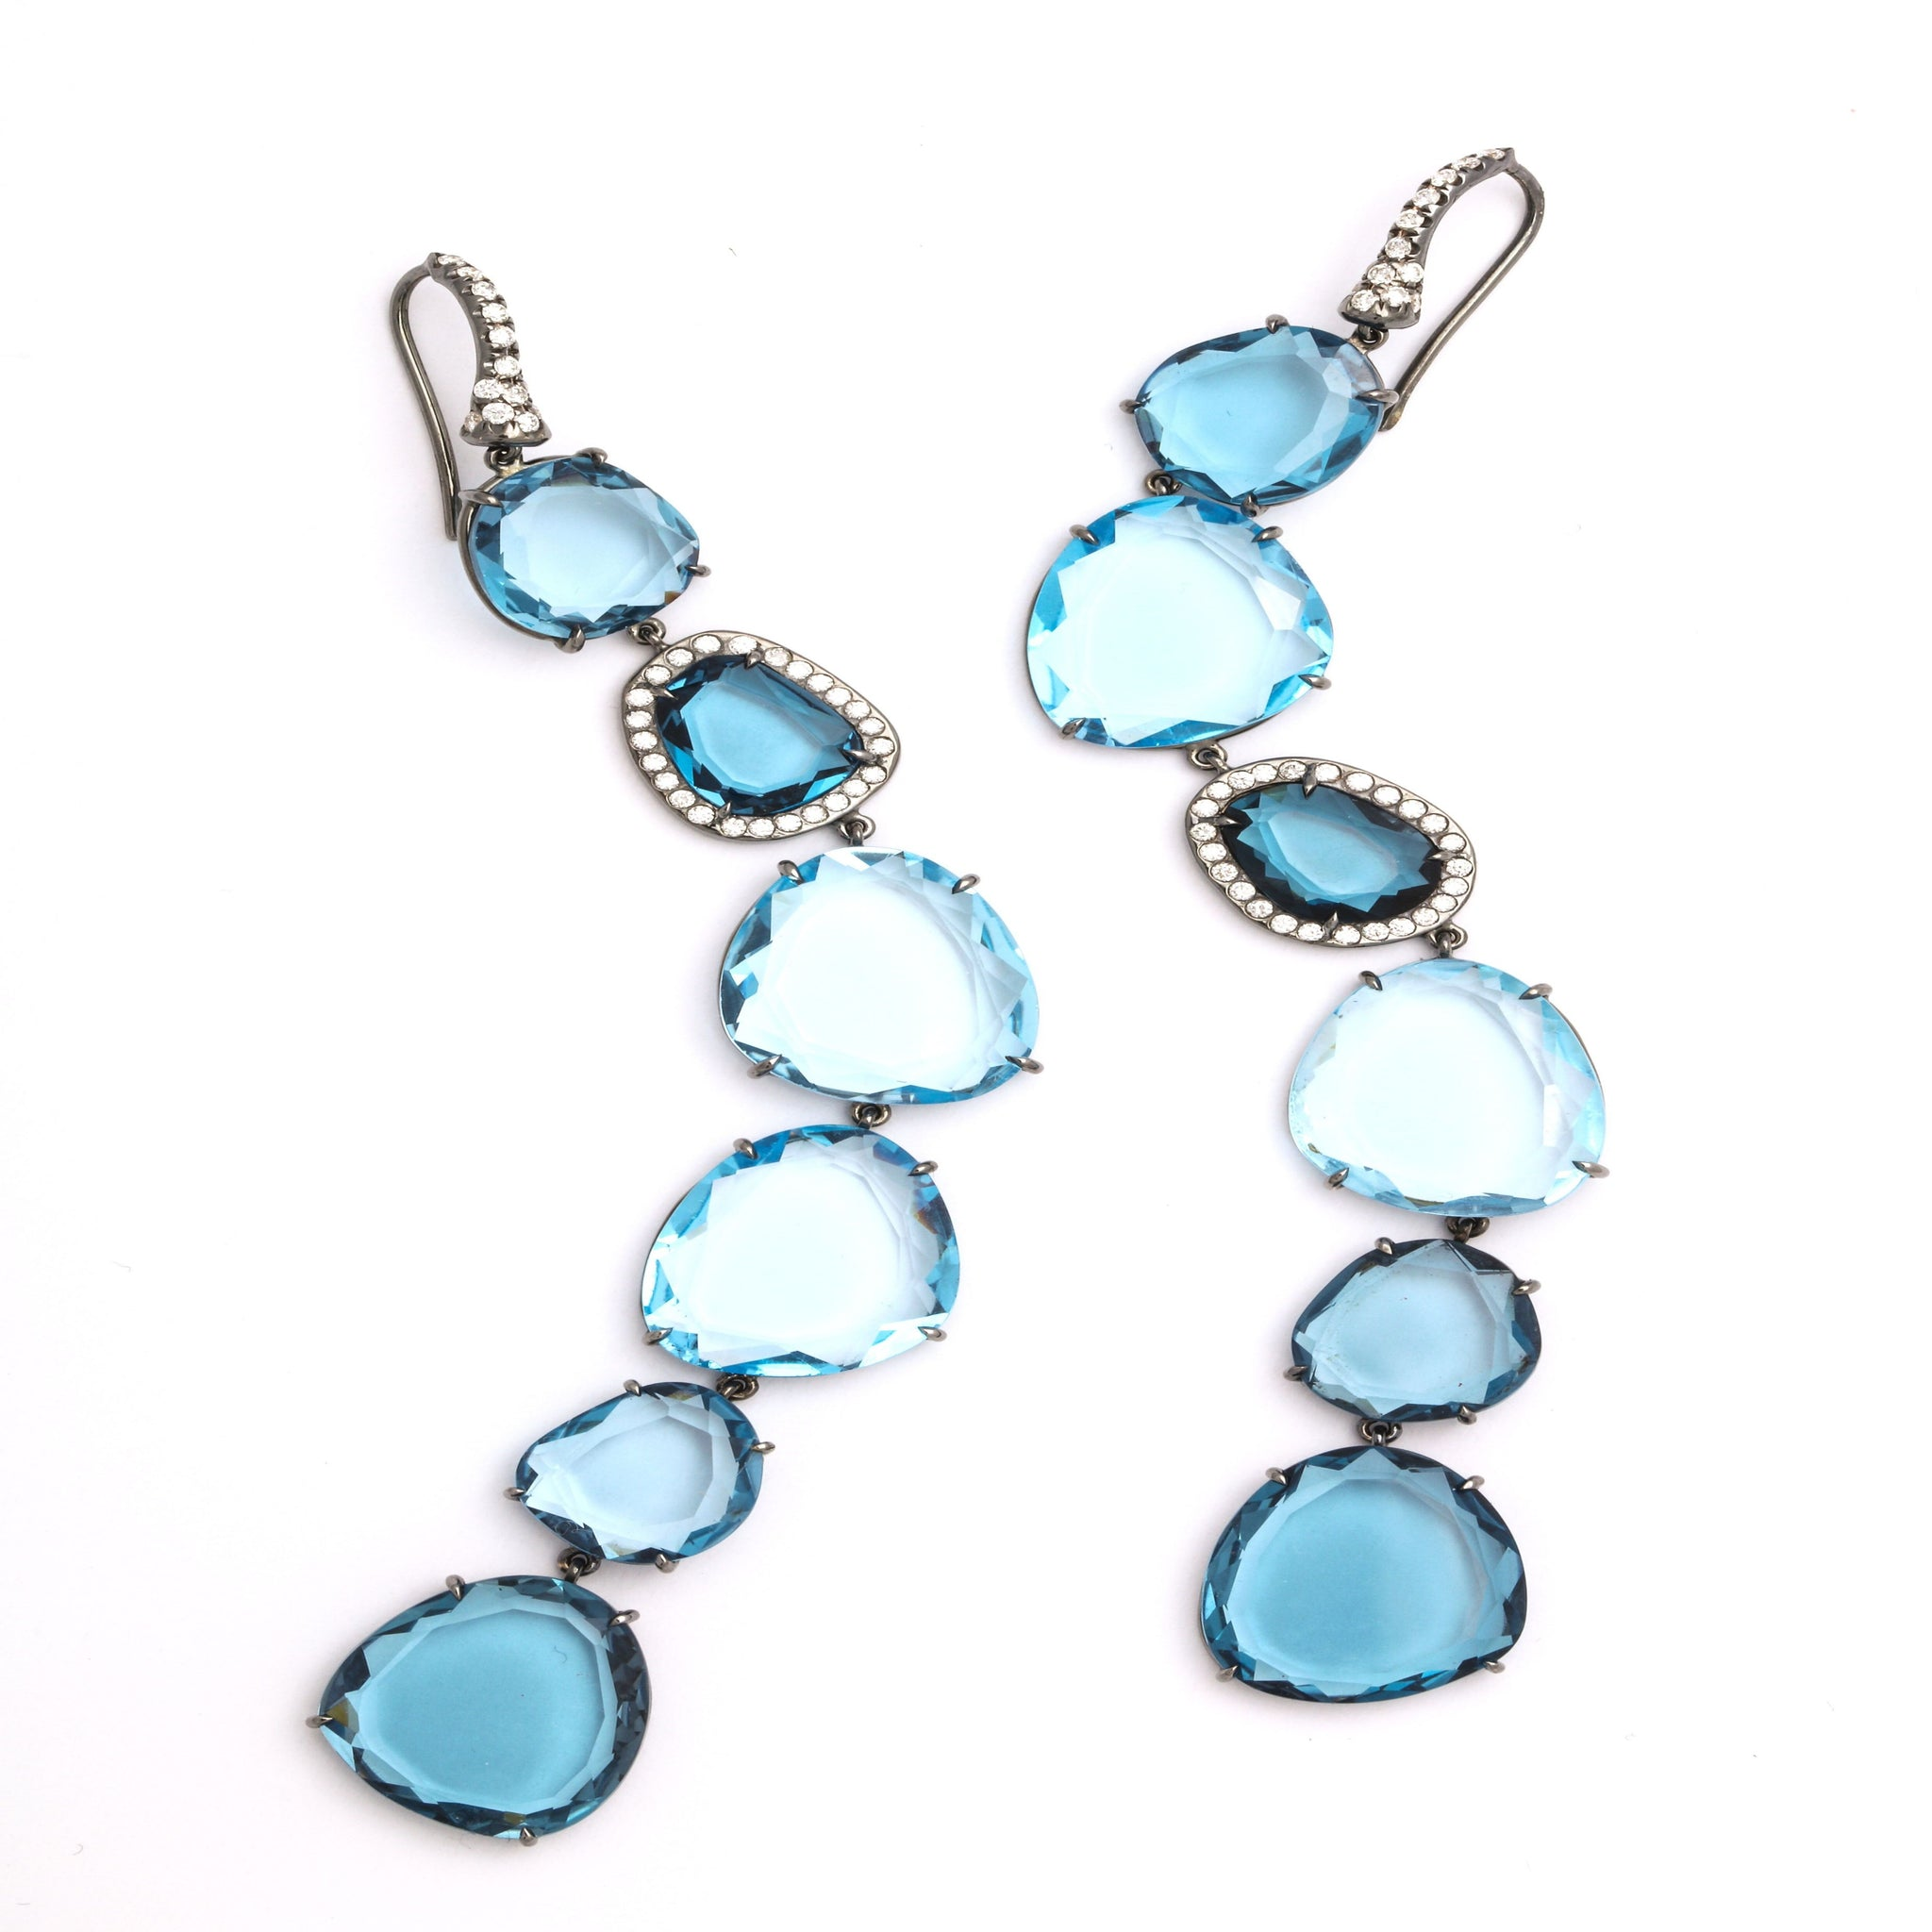 One of a Kind Shades of London Blue Topaz Shoulder Duster Earring